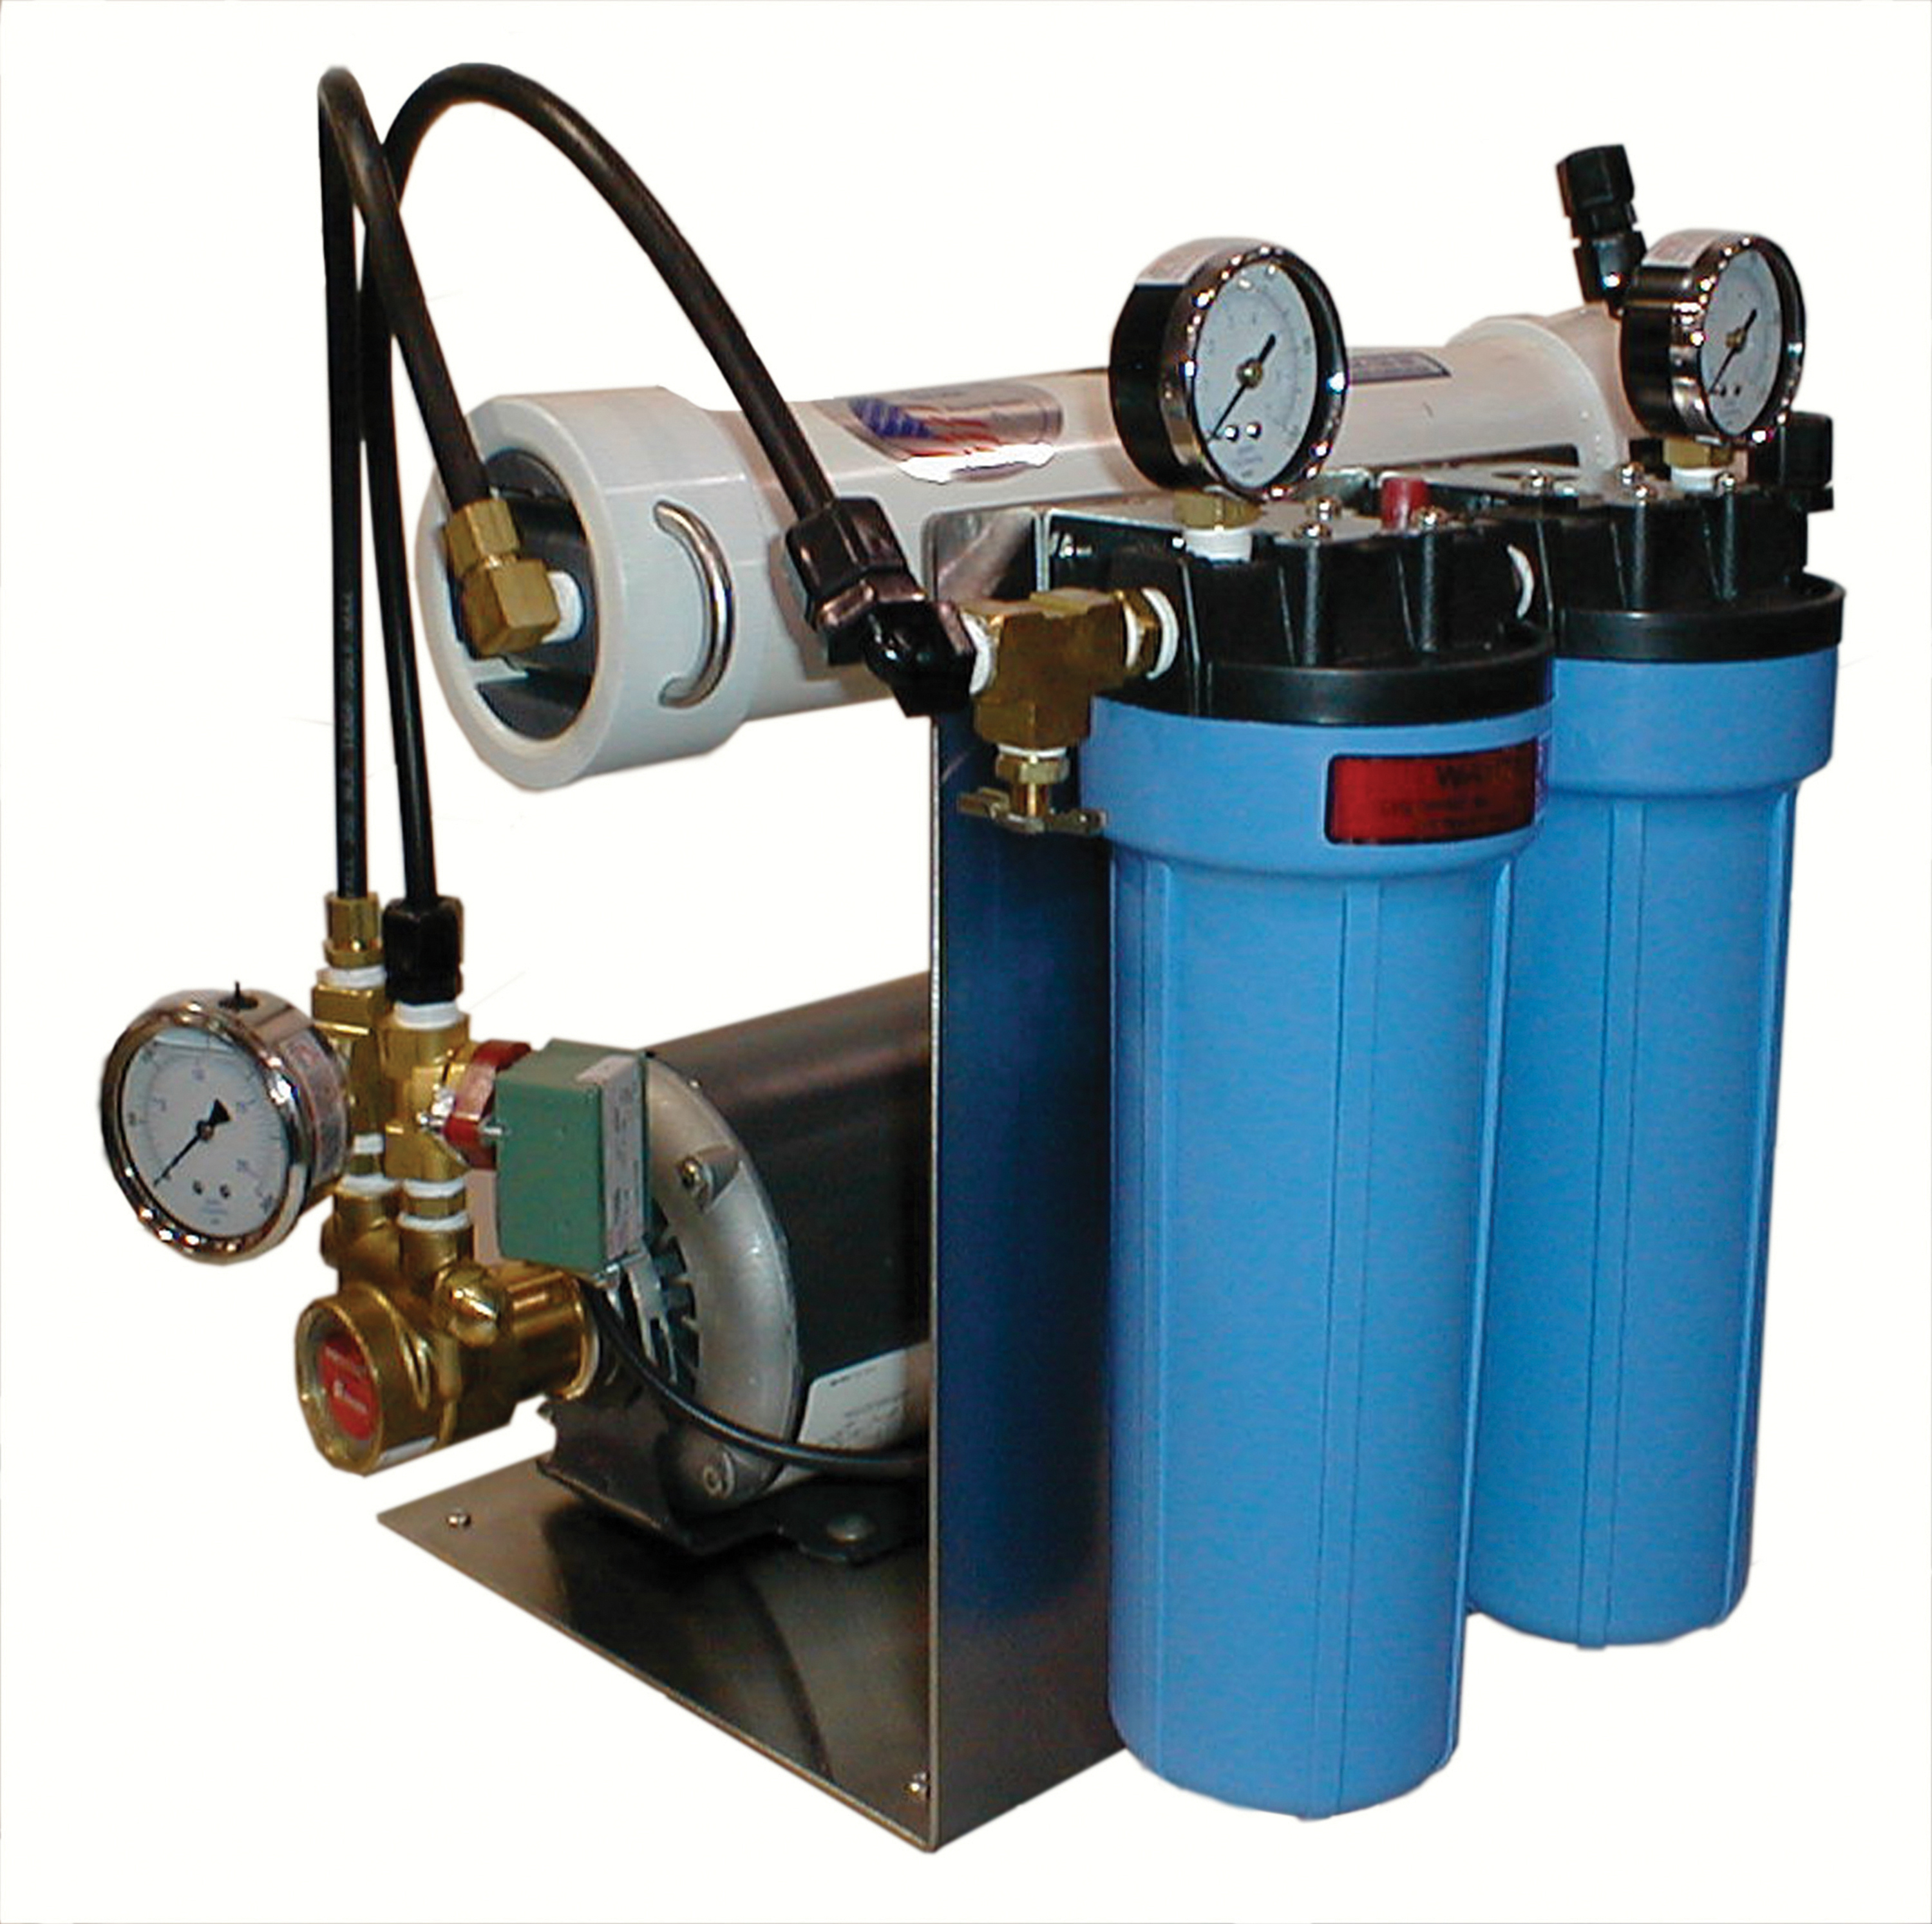 Whole house water filer system orodcut image